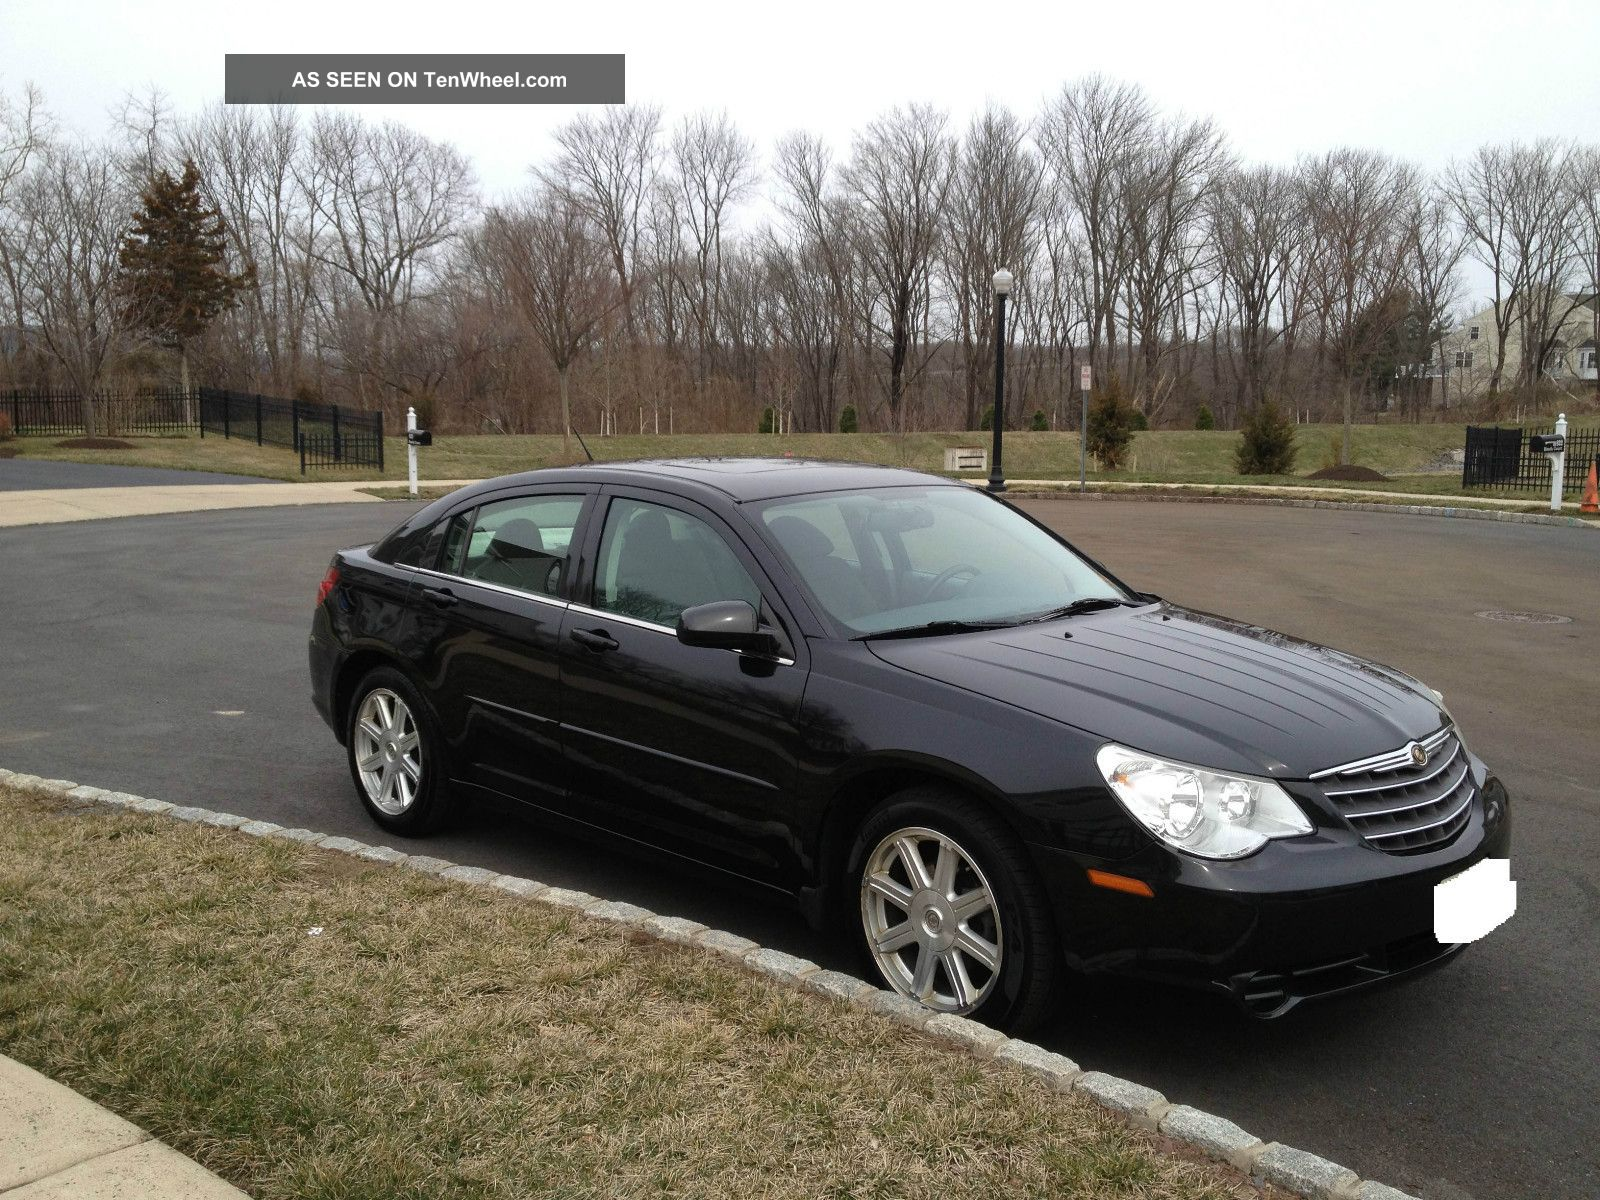 2007 chrysler sebring touring black remote start. Cars Review. Best American Auto & Cars Review